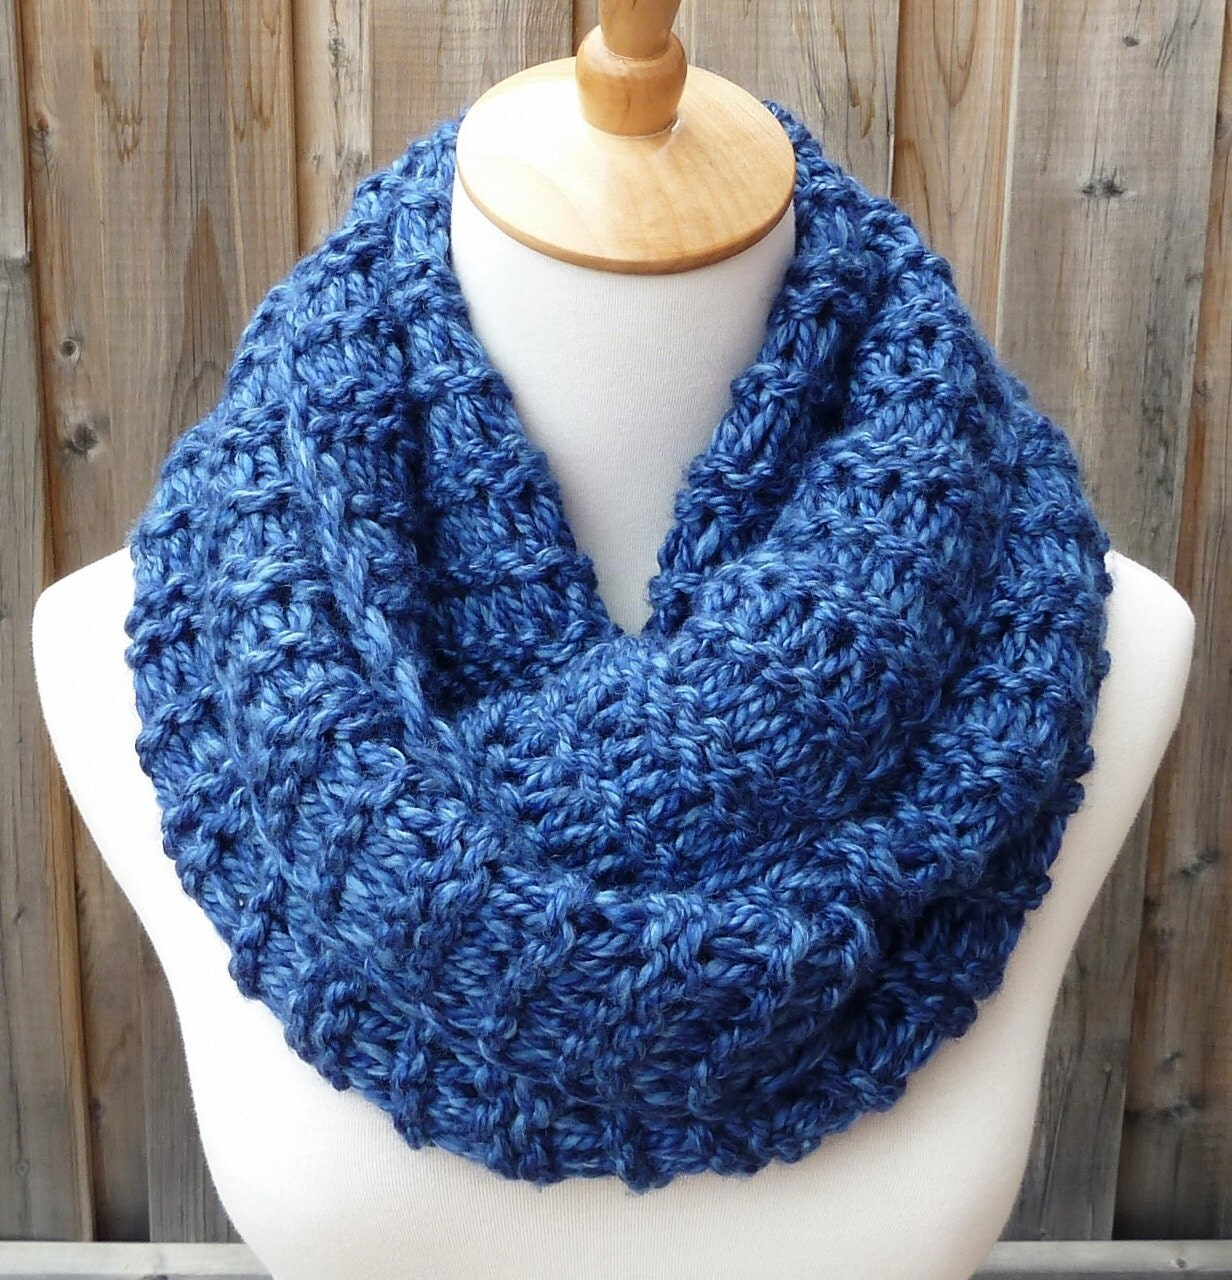 Infinity Scarf Knitting Patterns With these fabulous free and easy patterns for infinity scarves, you can go loop-the-loop crazy or keep it simple. Experiment with a huge range of textures and colorways: go bulky, super bulky or even arm knit%(K).